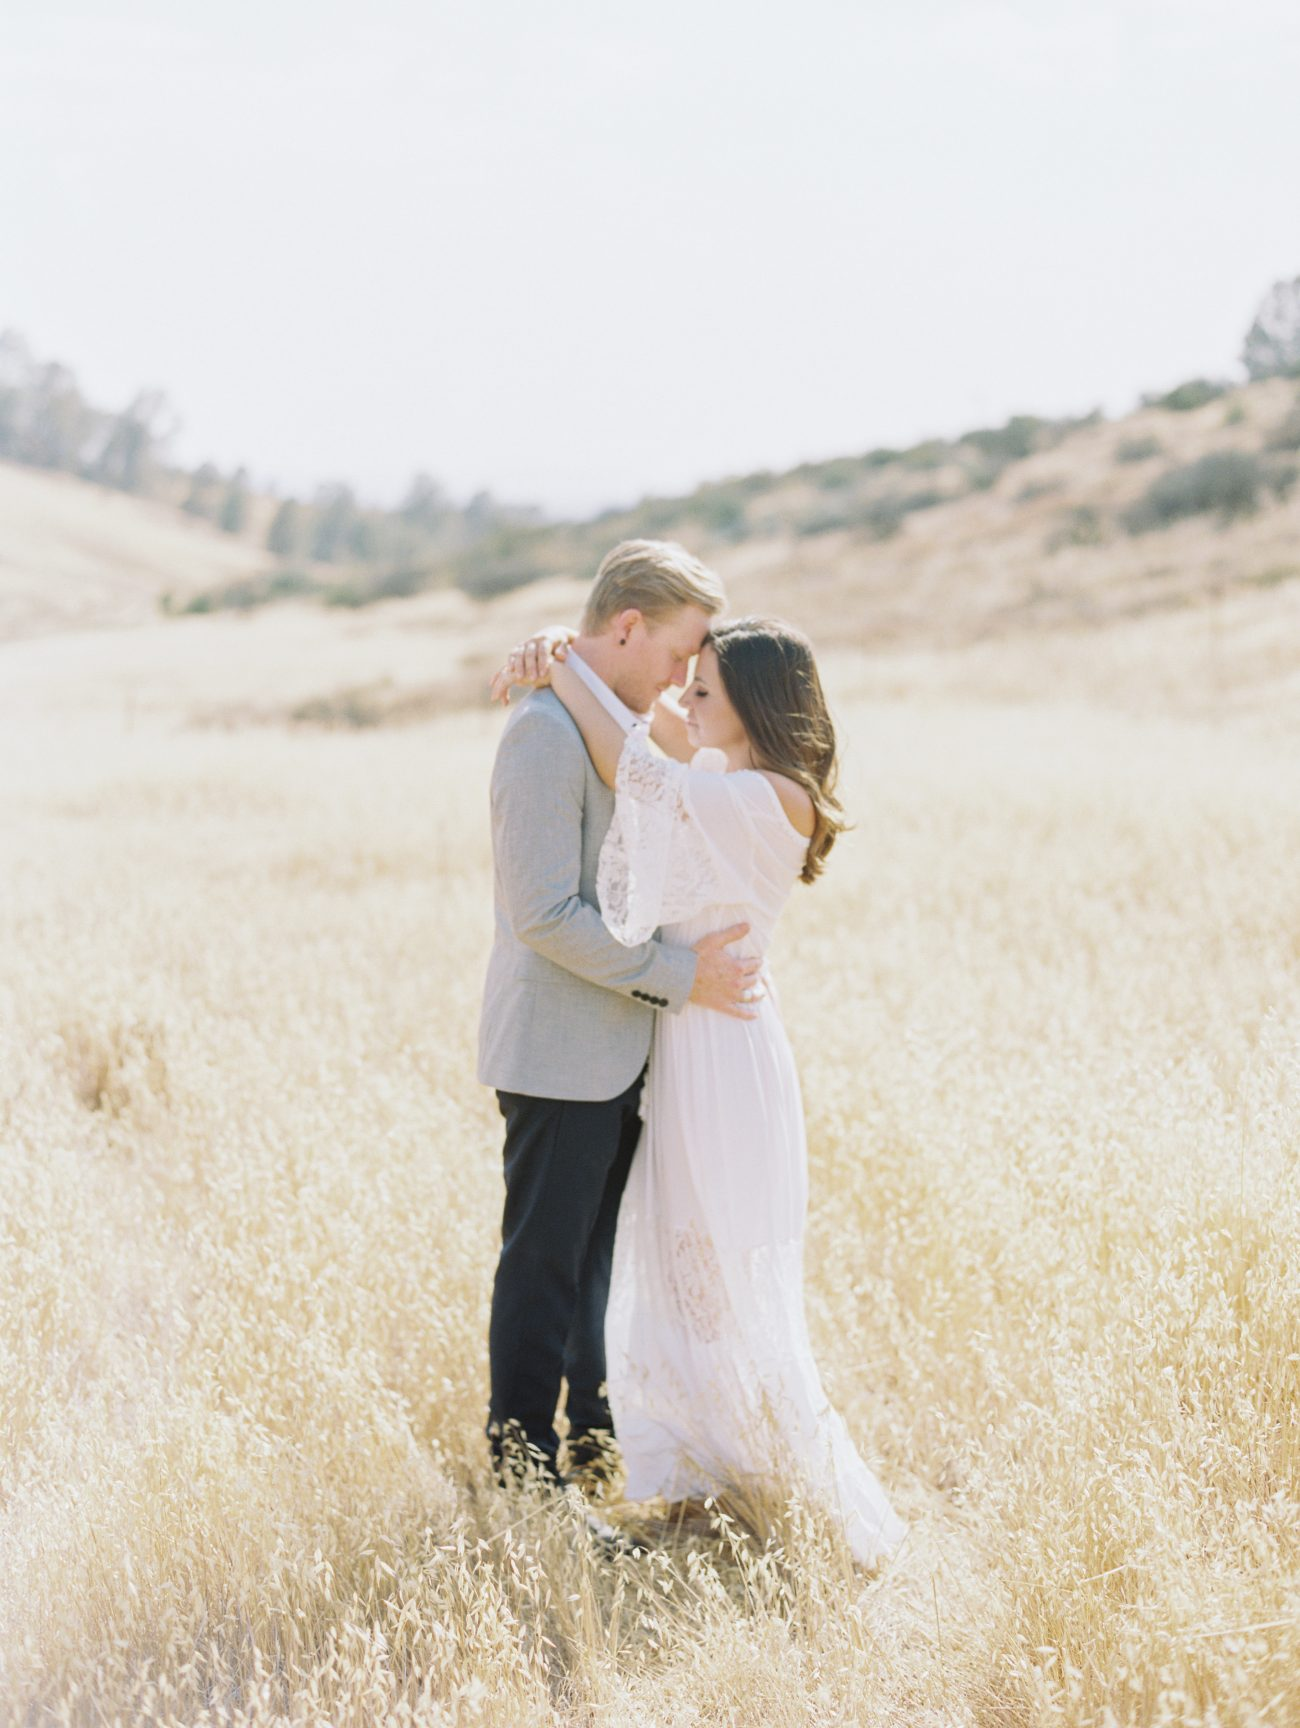 Breath Taking Engagement Photo Shoot on Figueroa Mountain in California